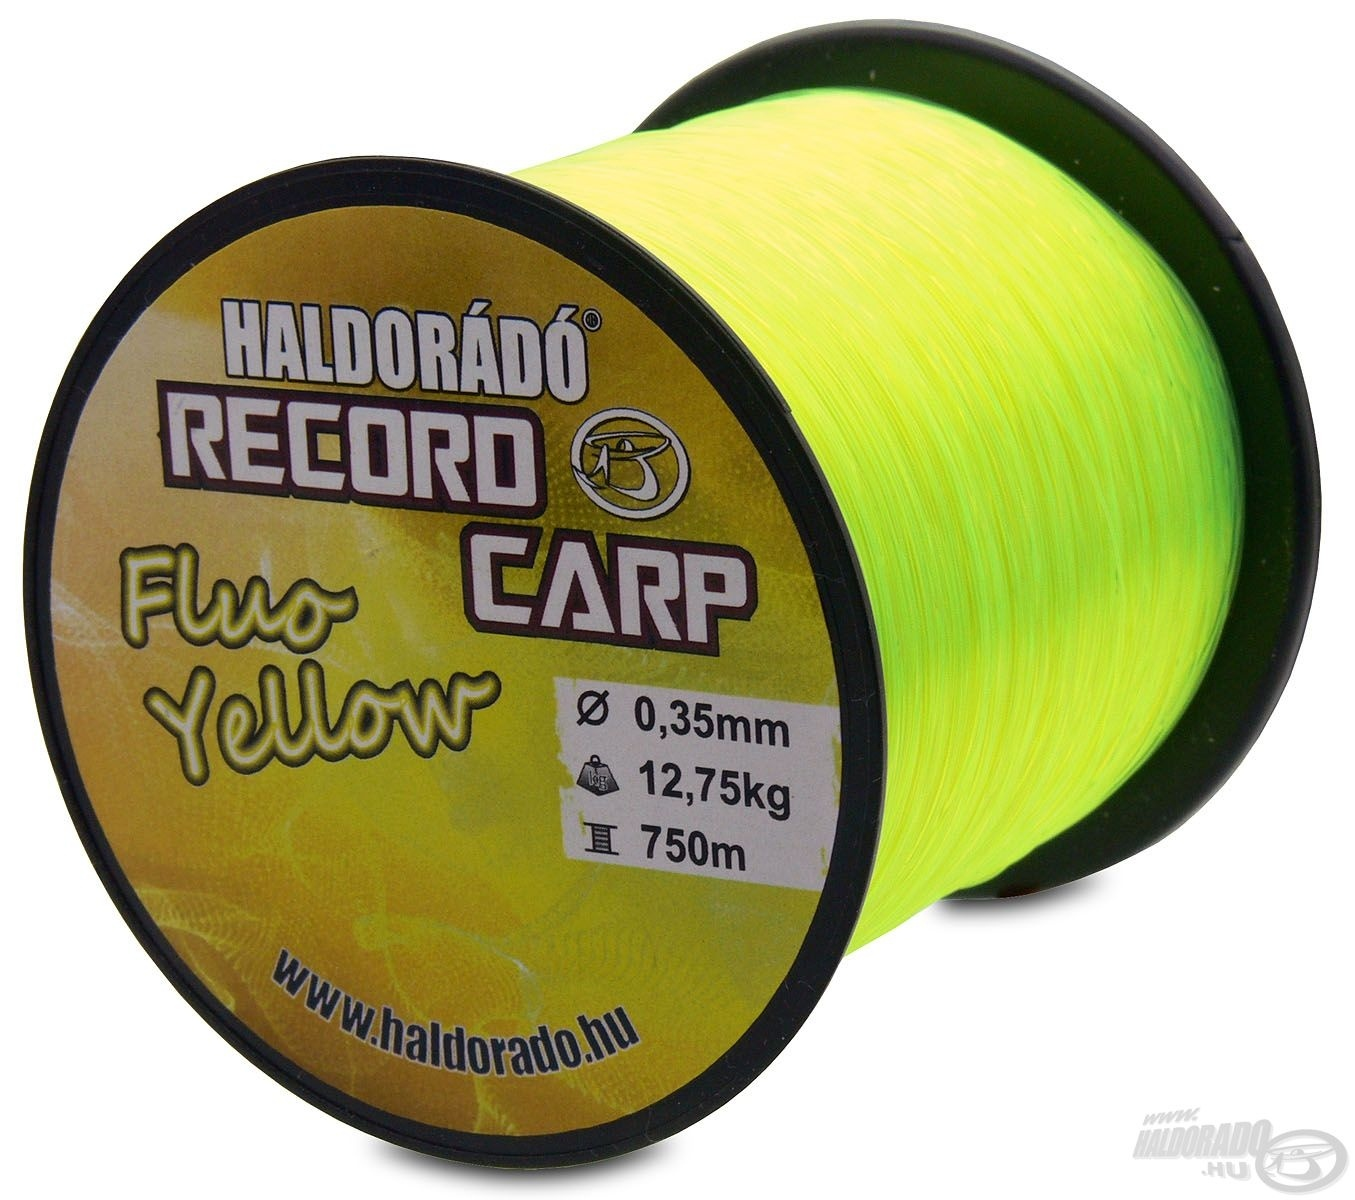 HALDOR�D�, Record, Carp, Fluo, Yellow, 1990Ft